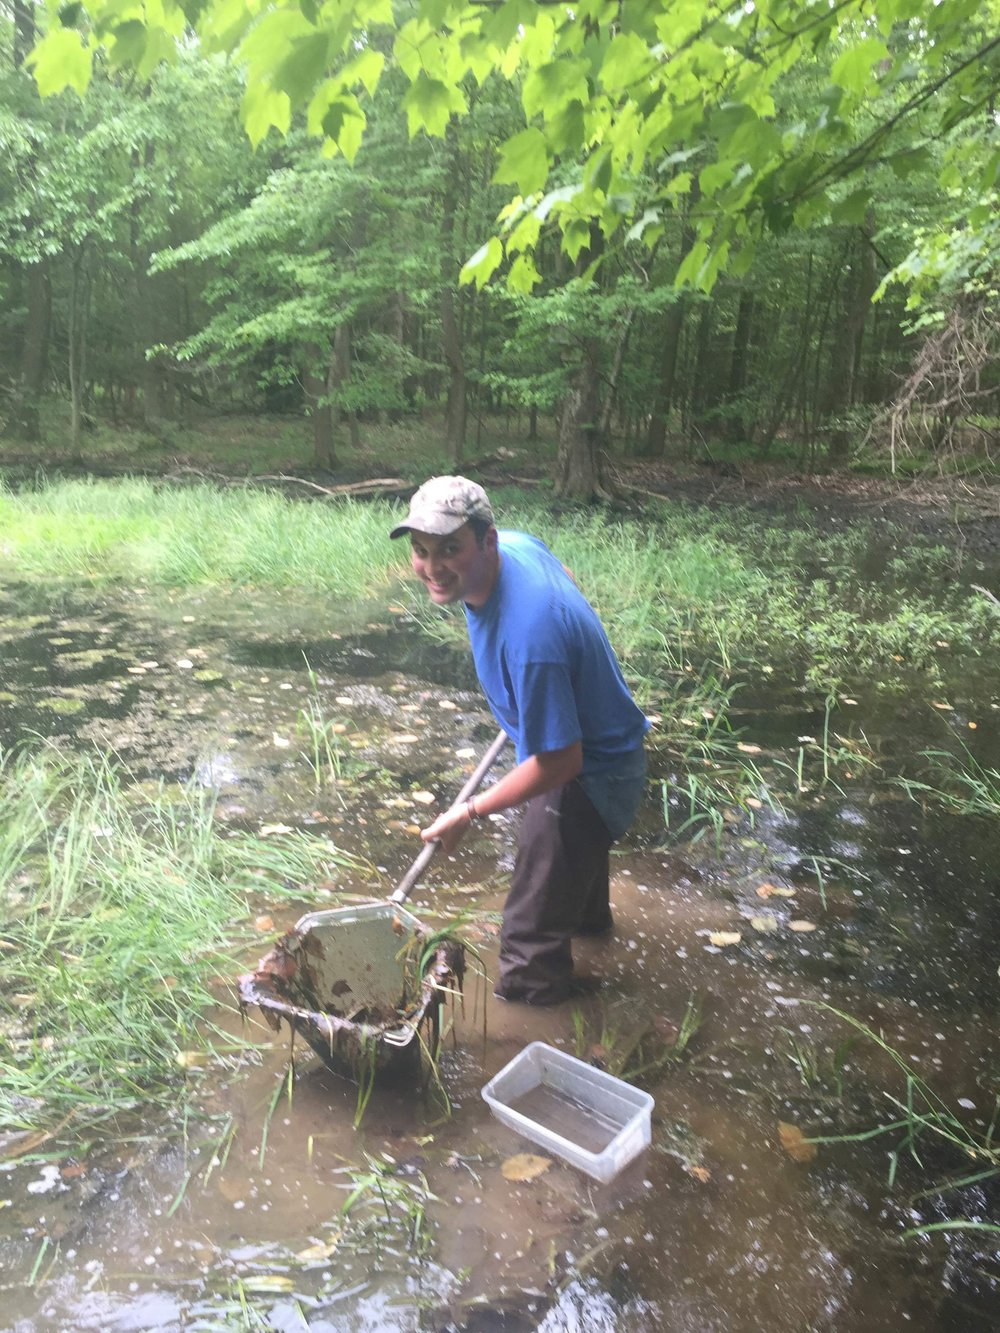 Sophomore Sam Govan searches for newts as part of his summer research in Michaux State Forest.